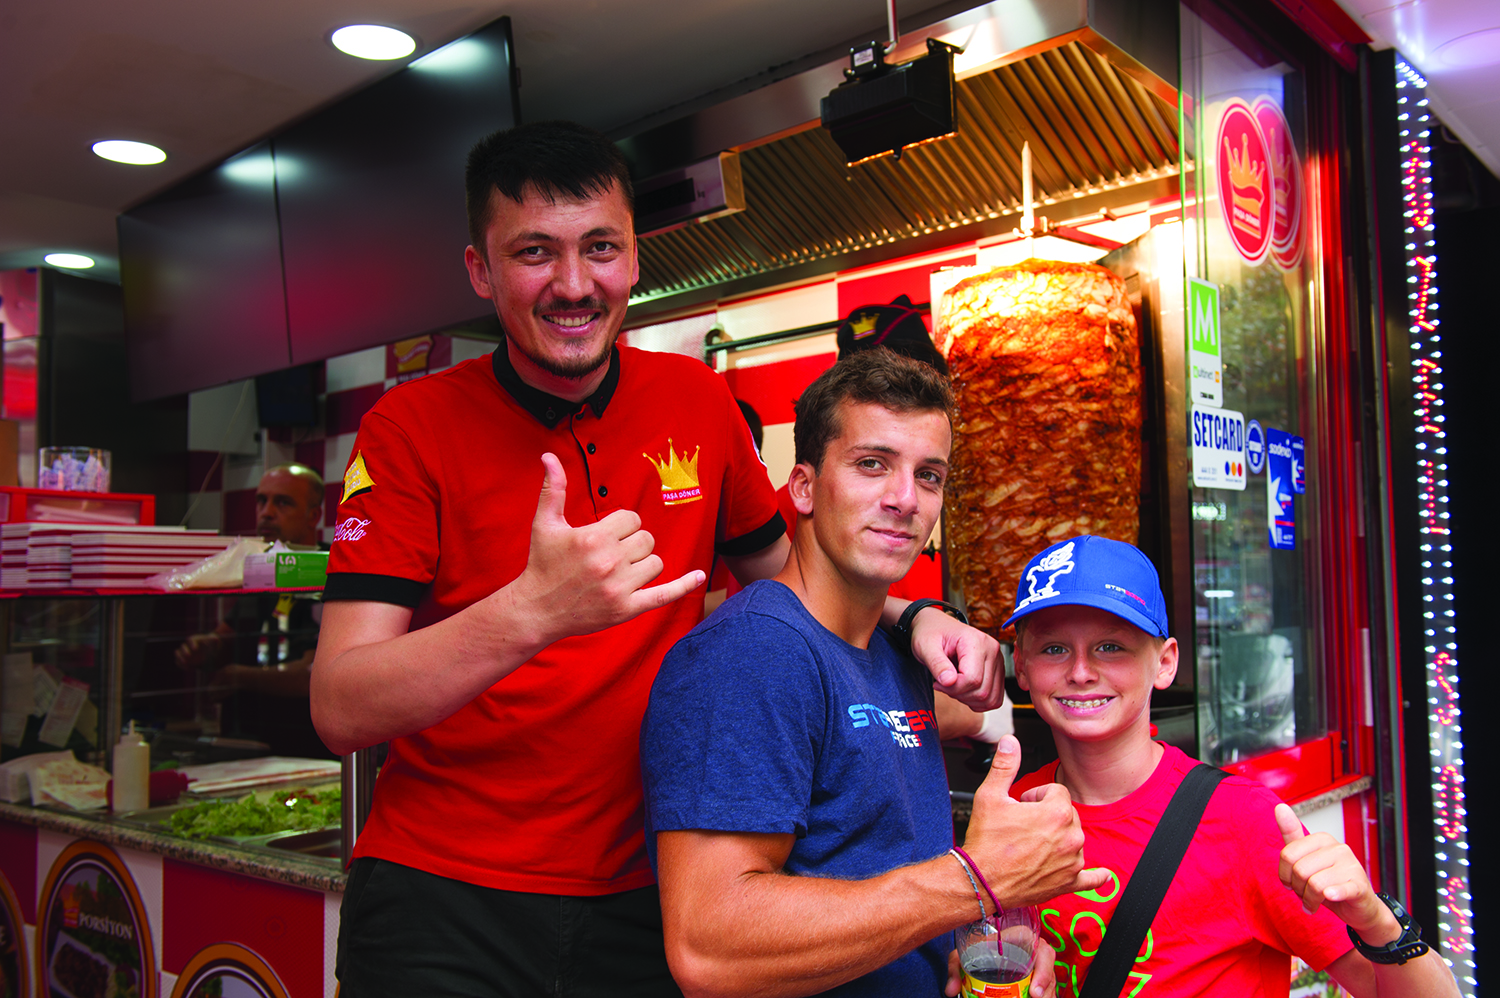 The boys giving thumbs up for Istanbul kebabs! - Click to Enlarge